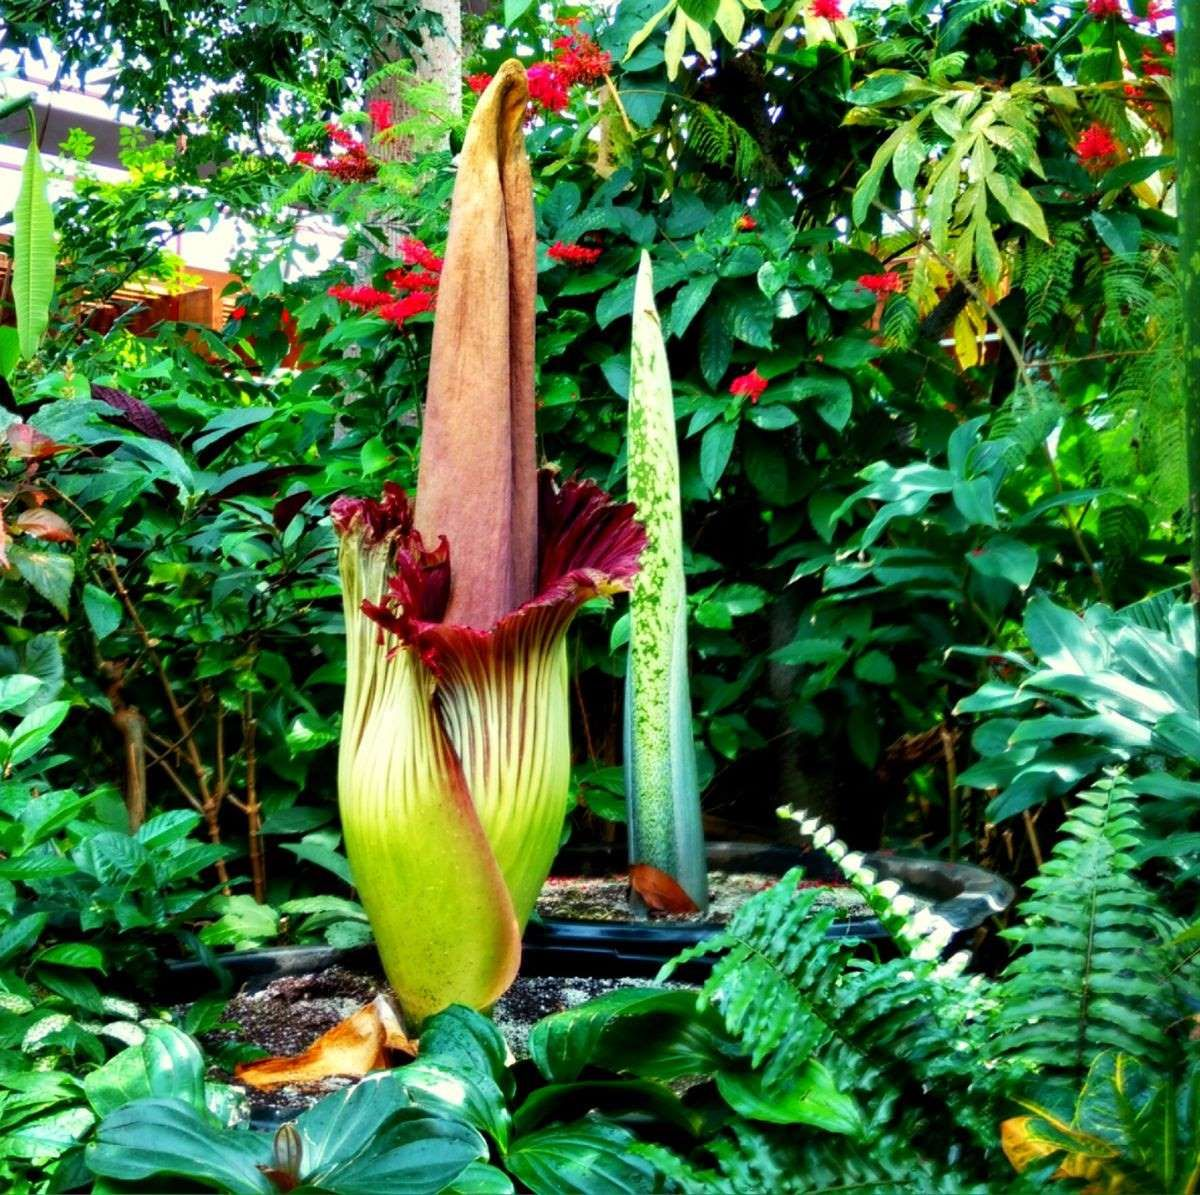 This Corpse Flower Is About To Bloom For The First Time In More Than 10 Years Corpse Flower Unusual Flowers Corpse Flower Bloom